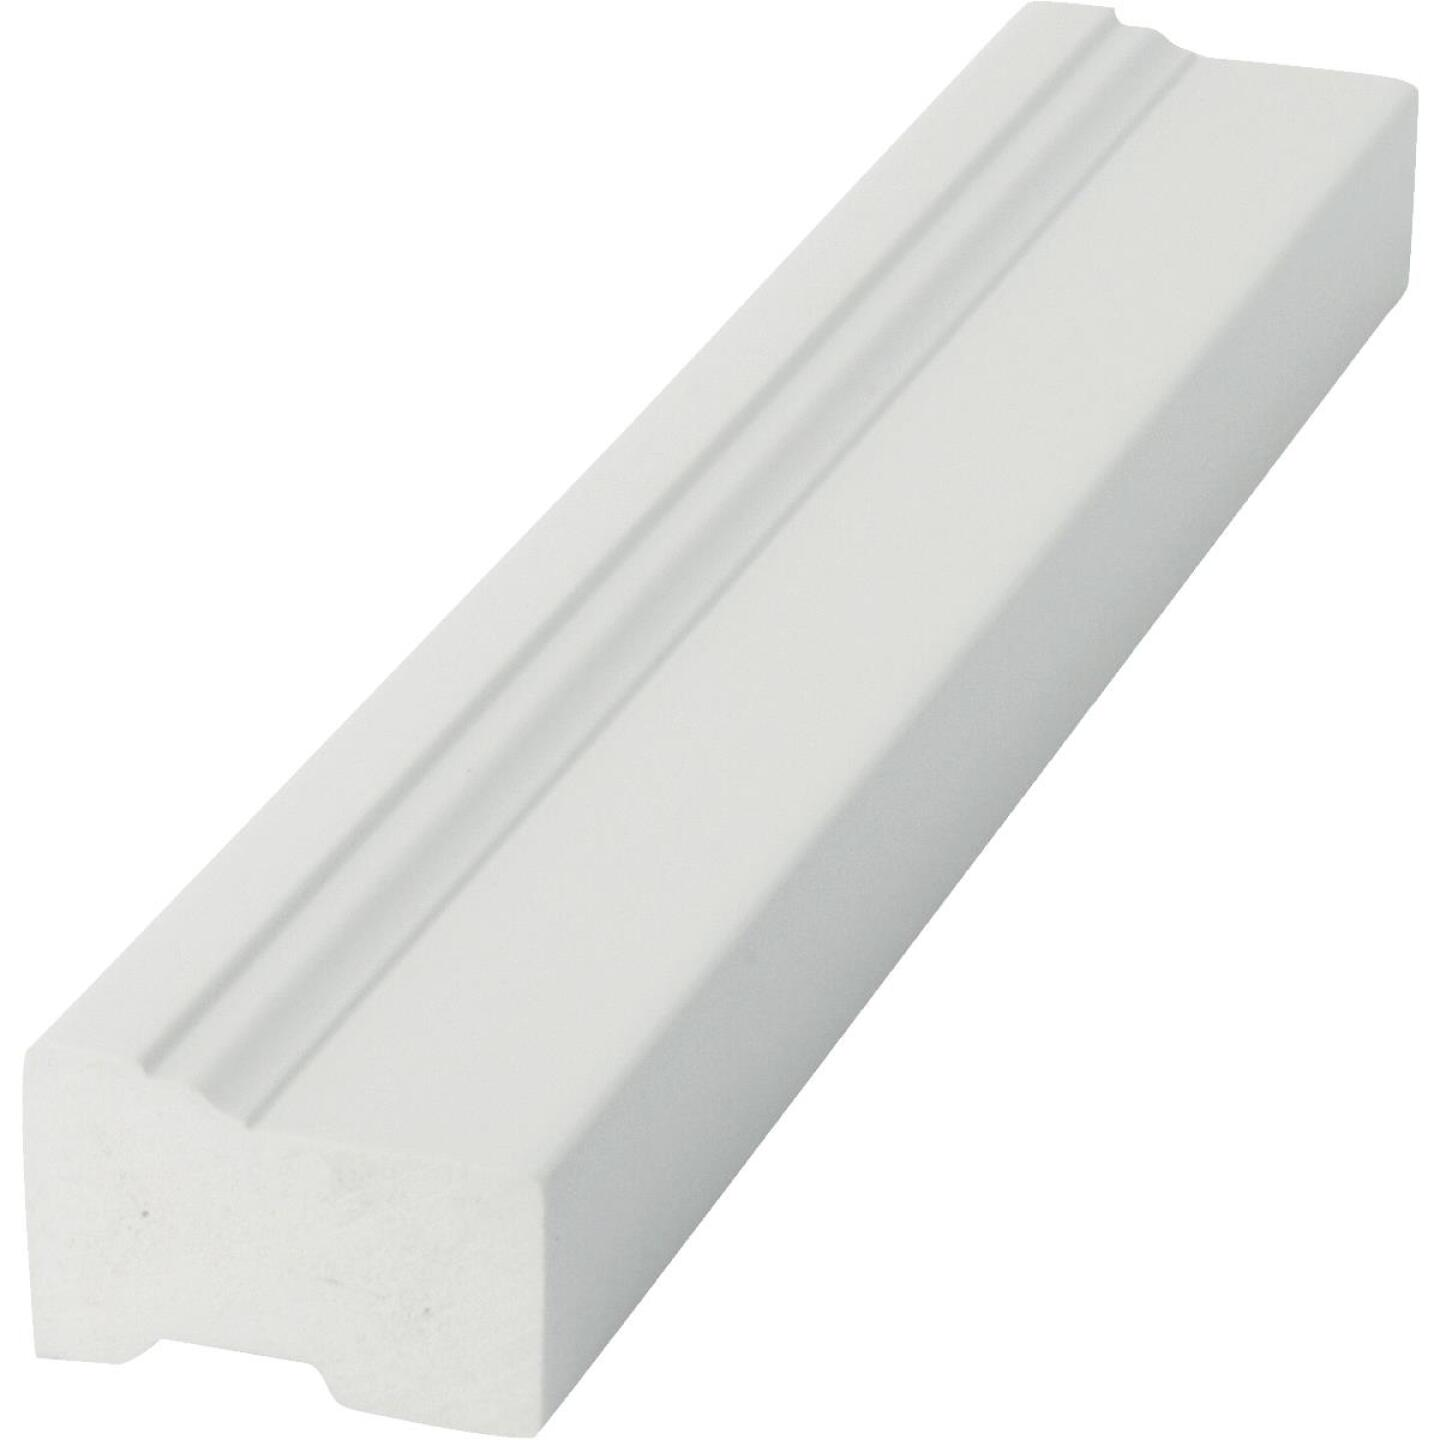 Royal 2 In. x 8 Ft. PVC Brick Molding Image 2